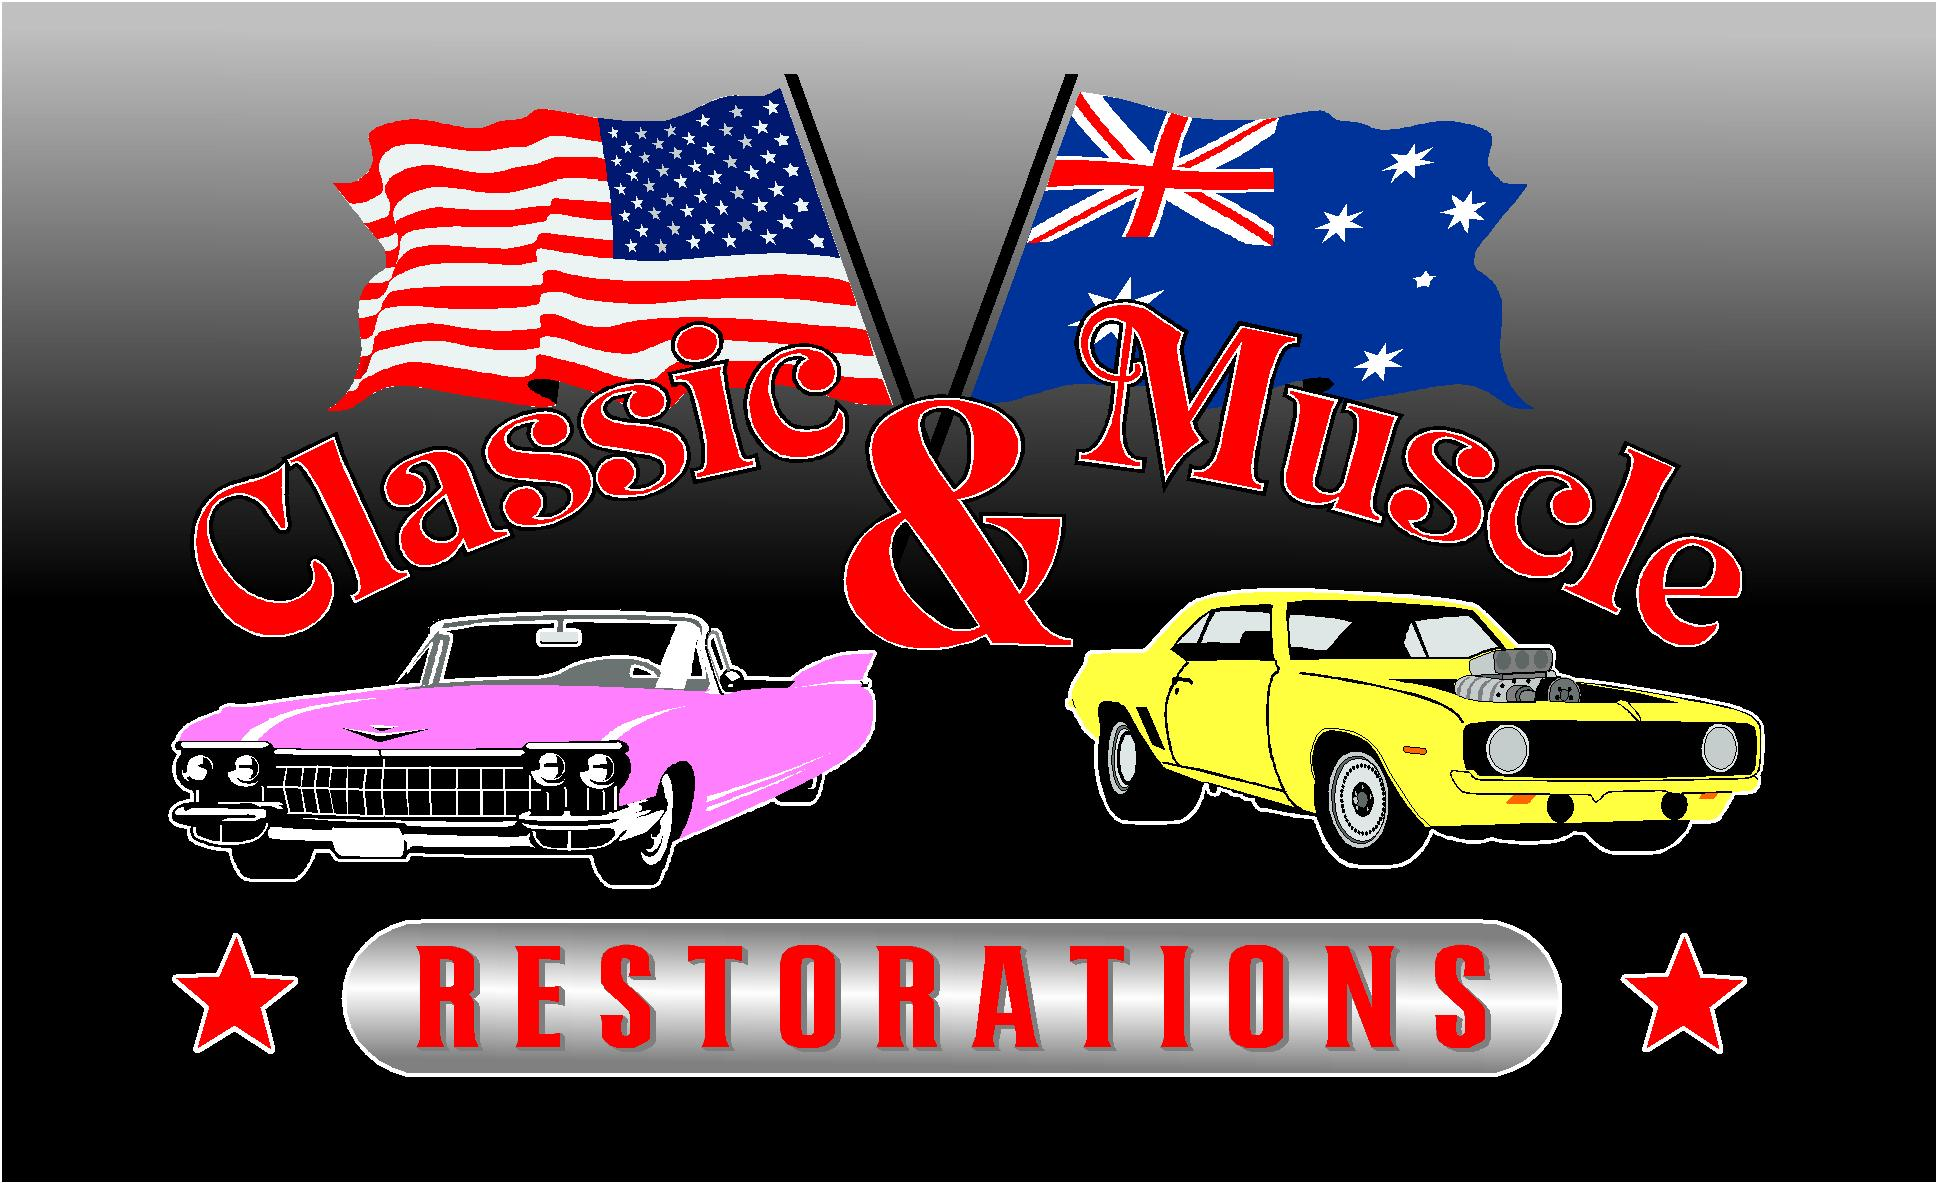 Click here to go to Classic and Muscle's website